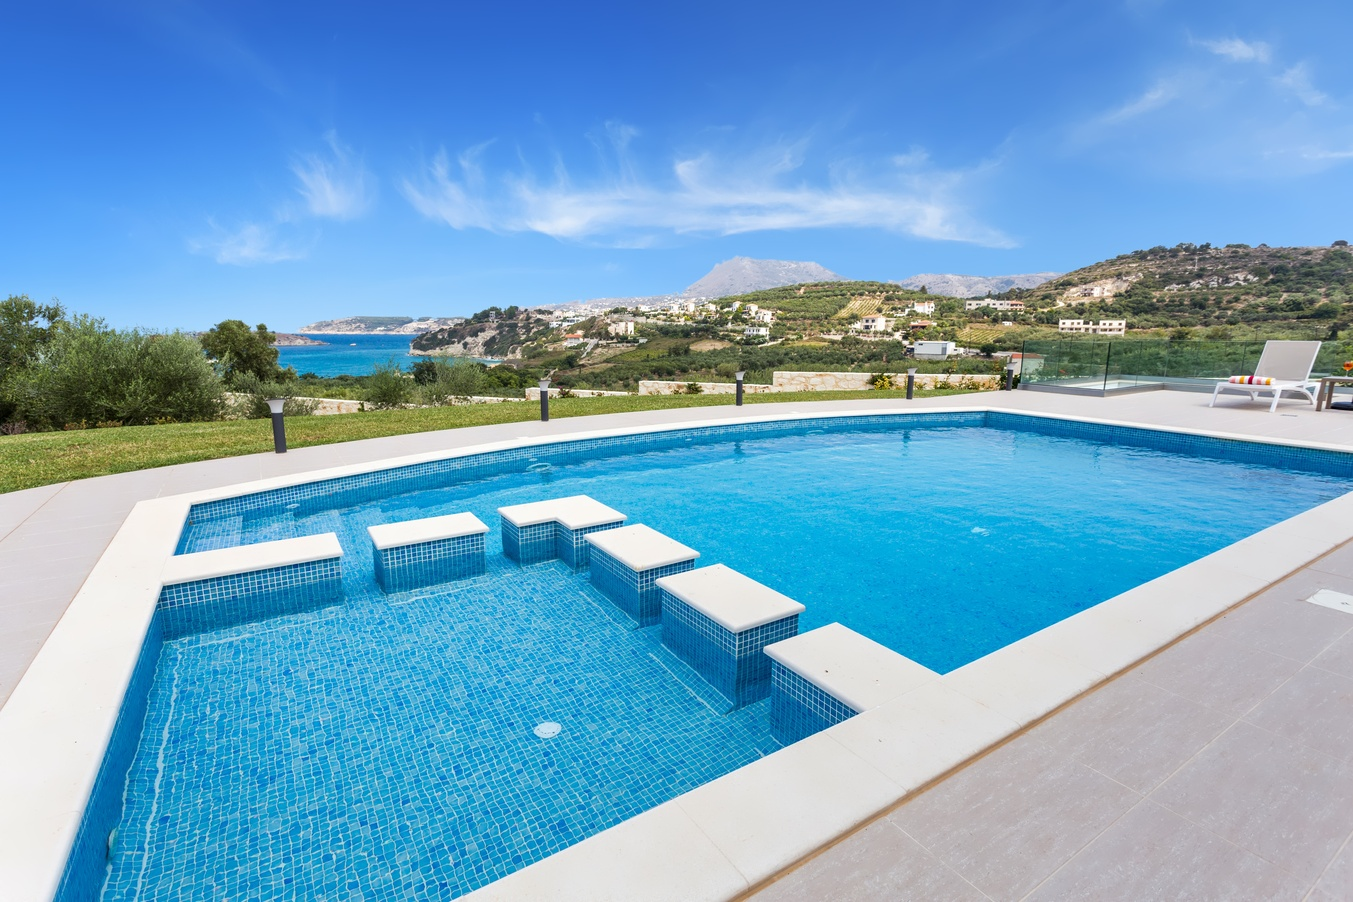 Rent a villa in Chania: Our top 2 villages to stay for vacation.